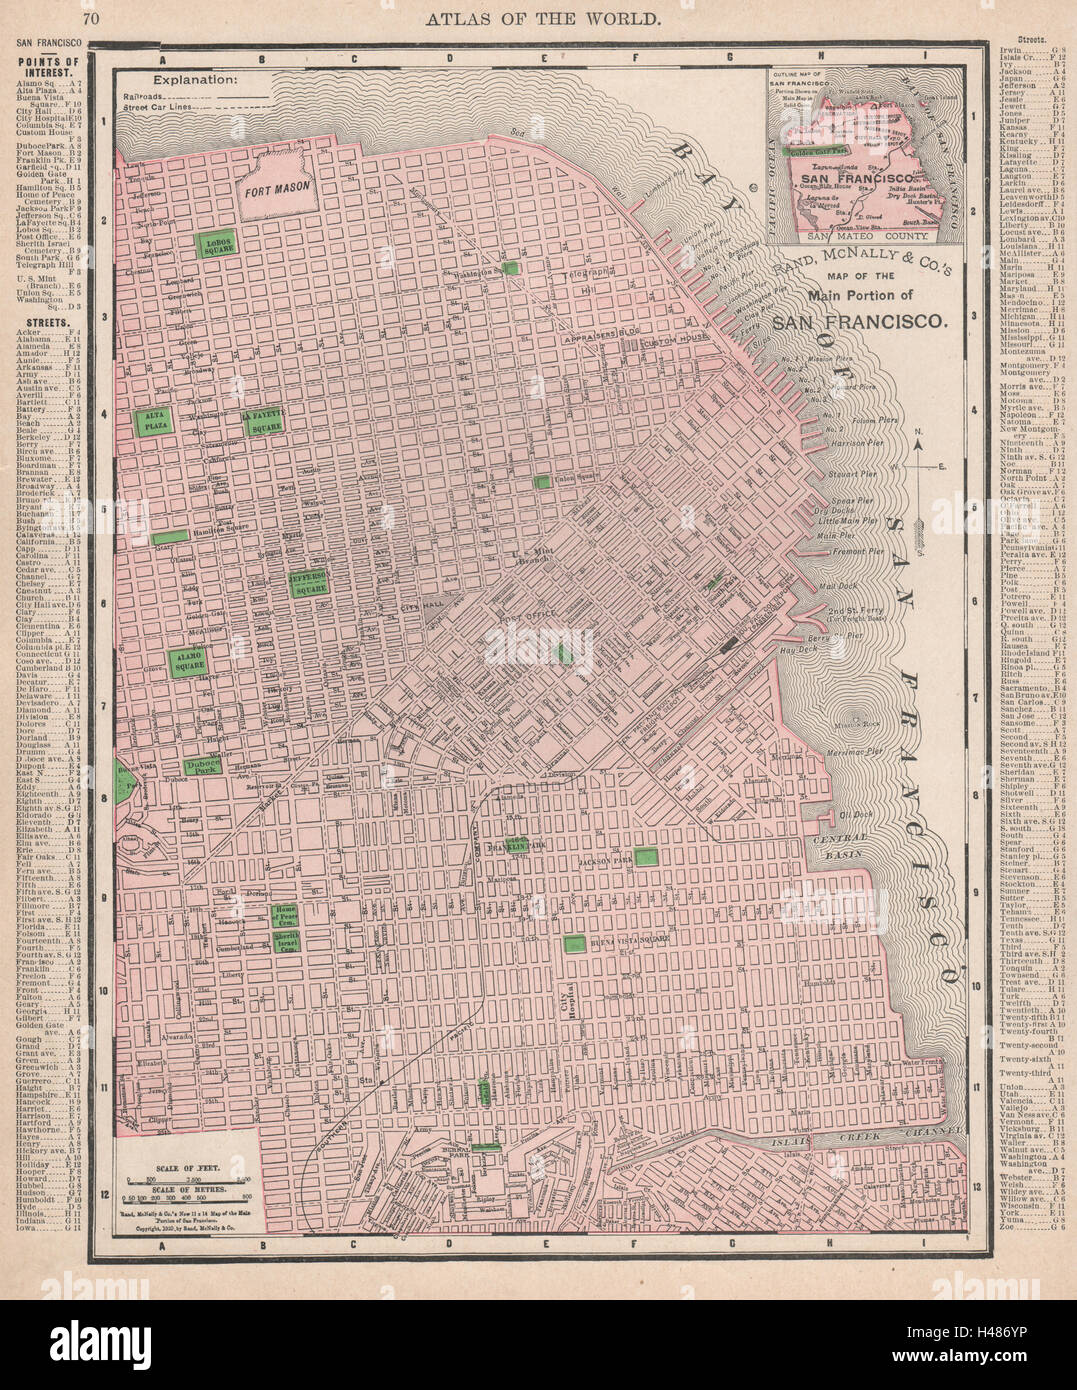 San Francisco city map plan. Street car lines. California ... on porterville city street map, springfield city street map, irvine city street map, san pablo city street map, santa clara county street map, jackson city street map, austin city street map, tacoma city street map, medford city street map, aurora city street map, snohomish city street map, wichita city street map, new haven city street map, inglewood city street map, ithaca city street map, napa city street map, flagstaff city street map, johannesburg city street map, billings city street map, madison city street map,